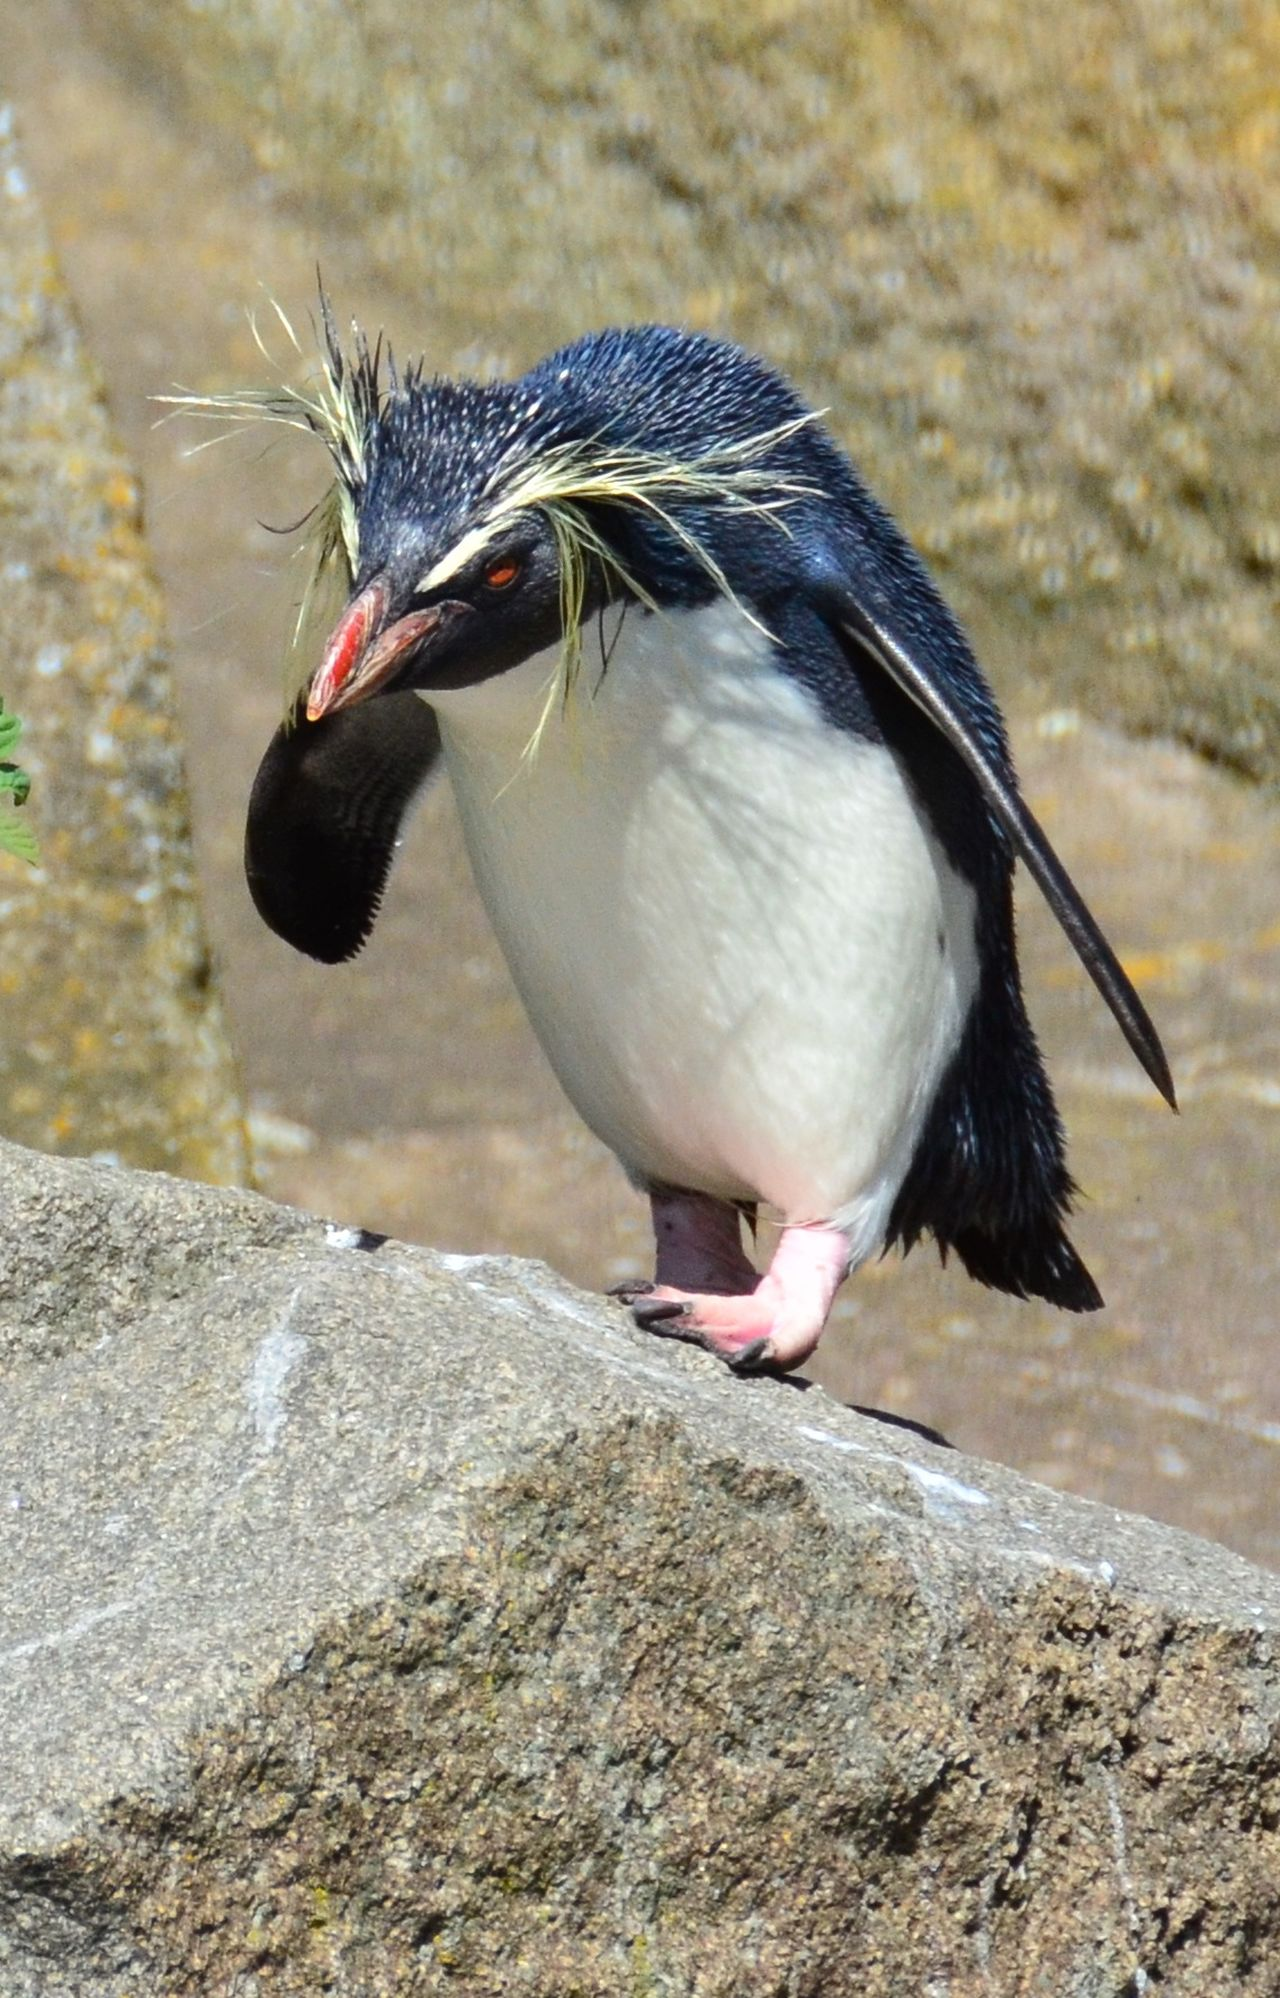 Penguin Pissed Off  Fed Up Ornery